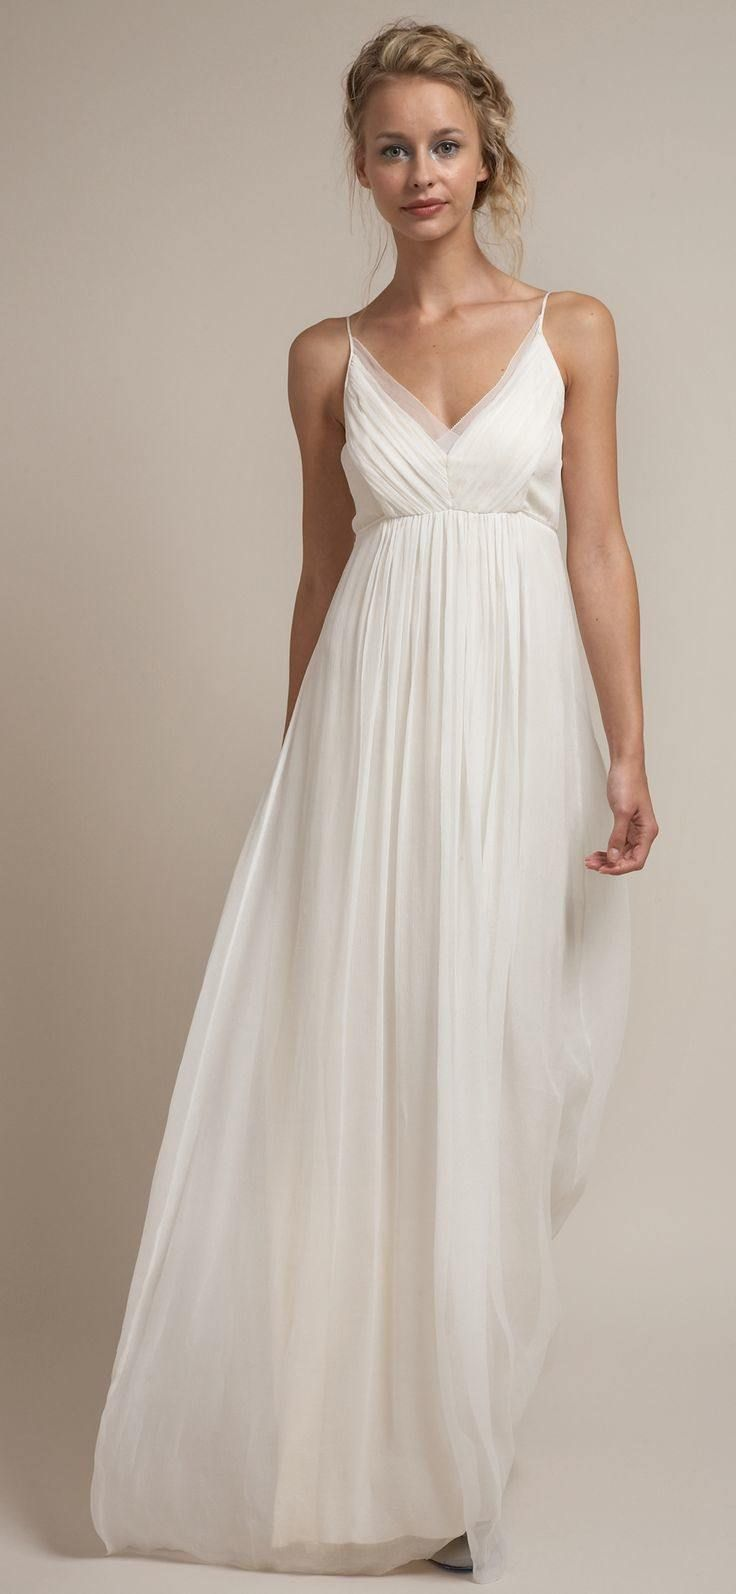 casual wedding dresses casual dresses for wedding Casual Wedding Dresses For The Minimalist